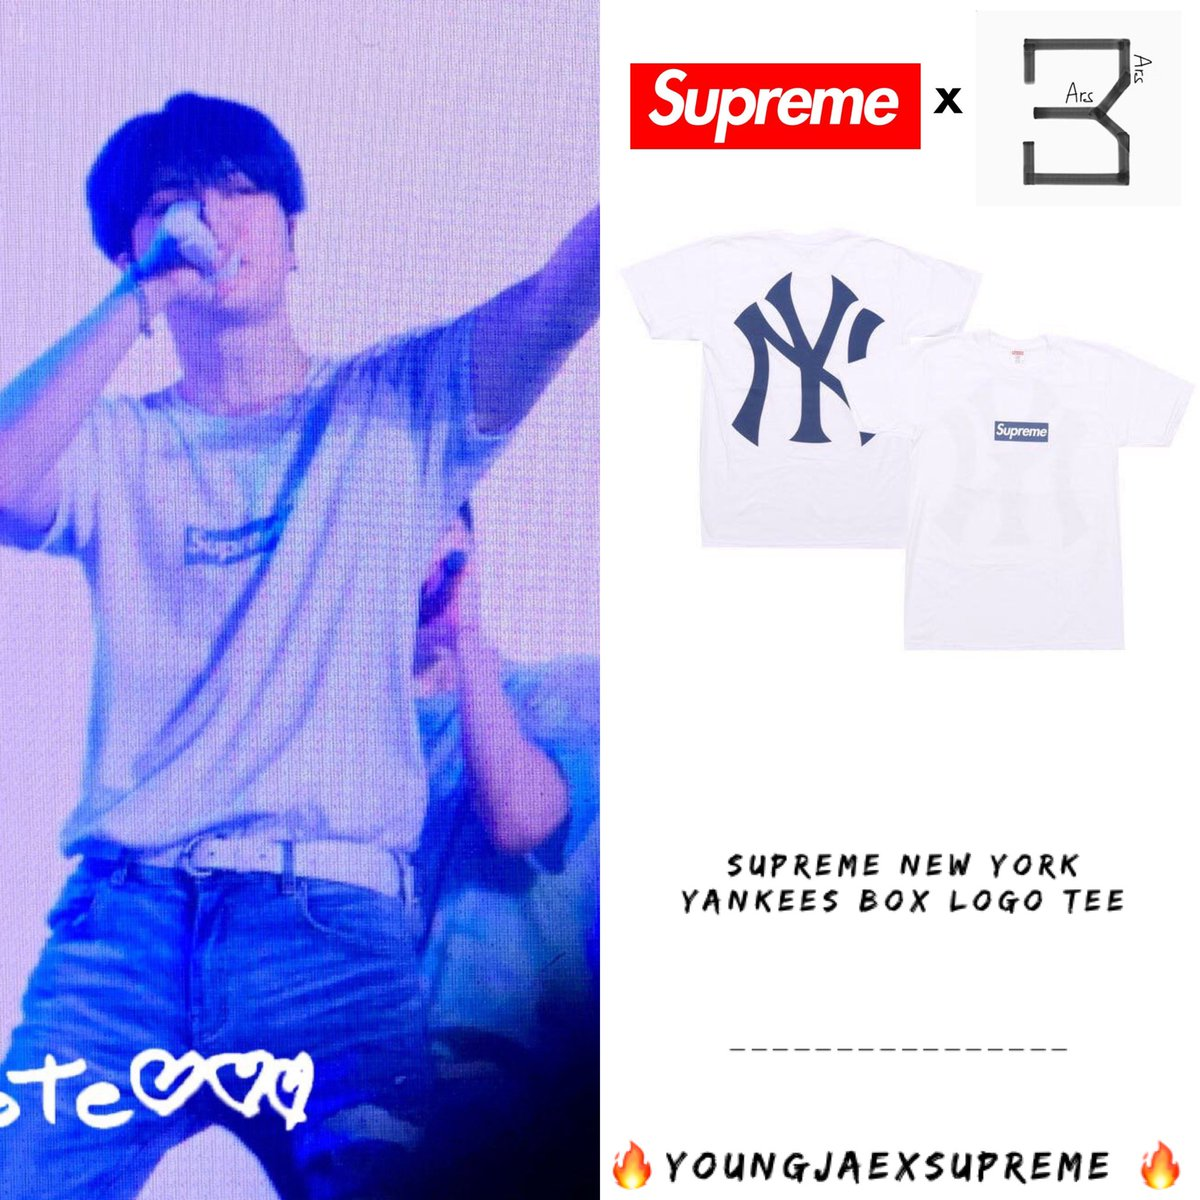 KEEP SPINNING IN SANTIAGO [190716] Boy : @GOTYJ_Ars_Vita   #YoungjaexSupreme  Supreme New York Yankees Box Logo Tee White $44.00 Approx THB1,360 Credit:Twitter @solenote917 + #Supremeboy #Youngjae  #ความยองแจ #영재<br>http://pic.twitter.com/Ilud81wFfW